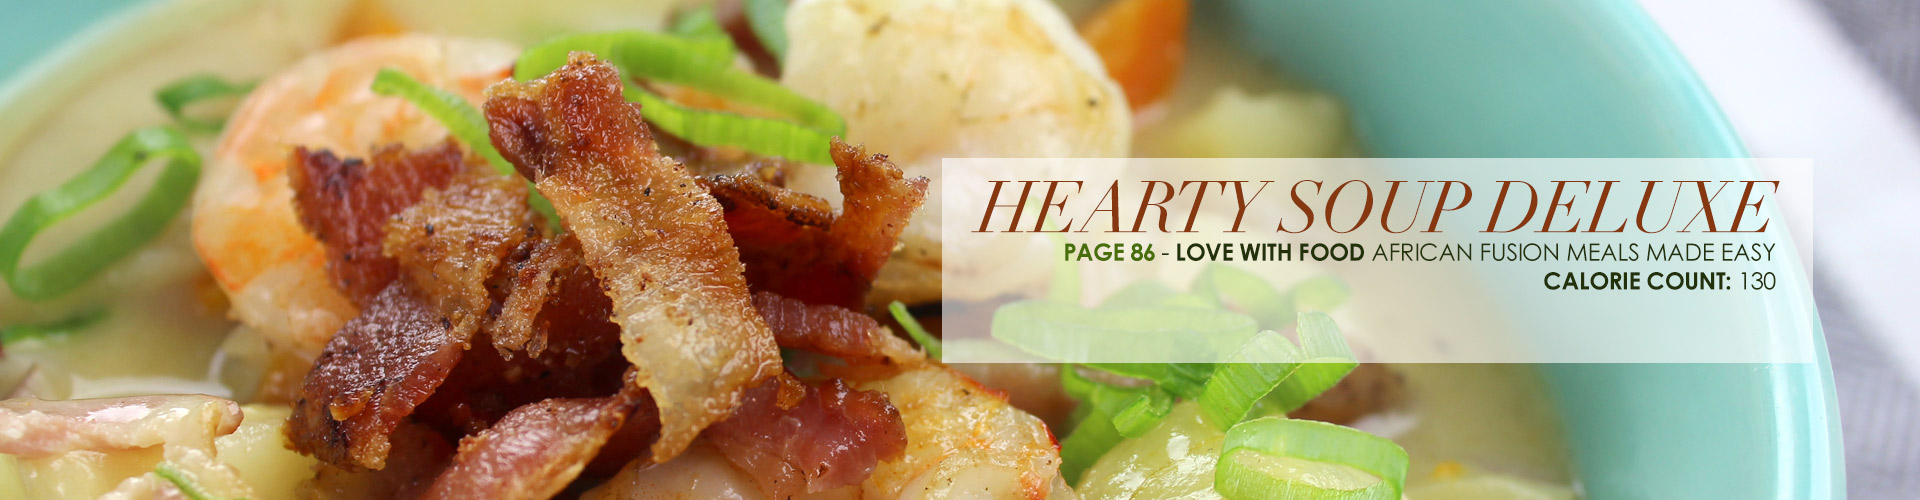 slider-holiday-2015-Hearty